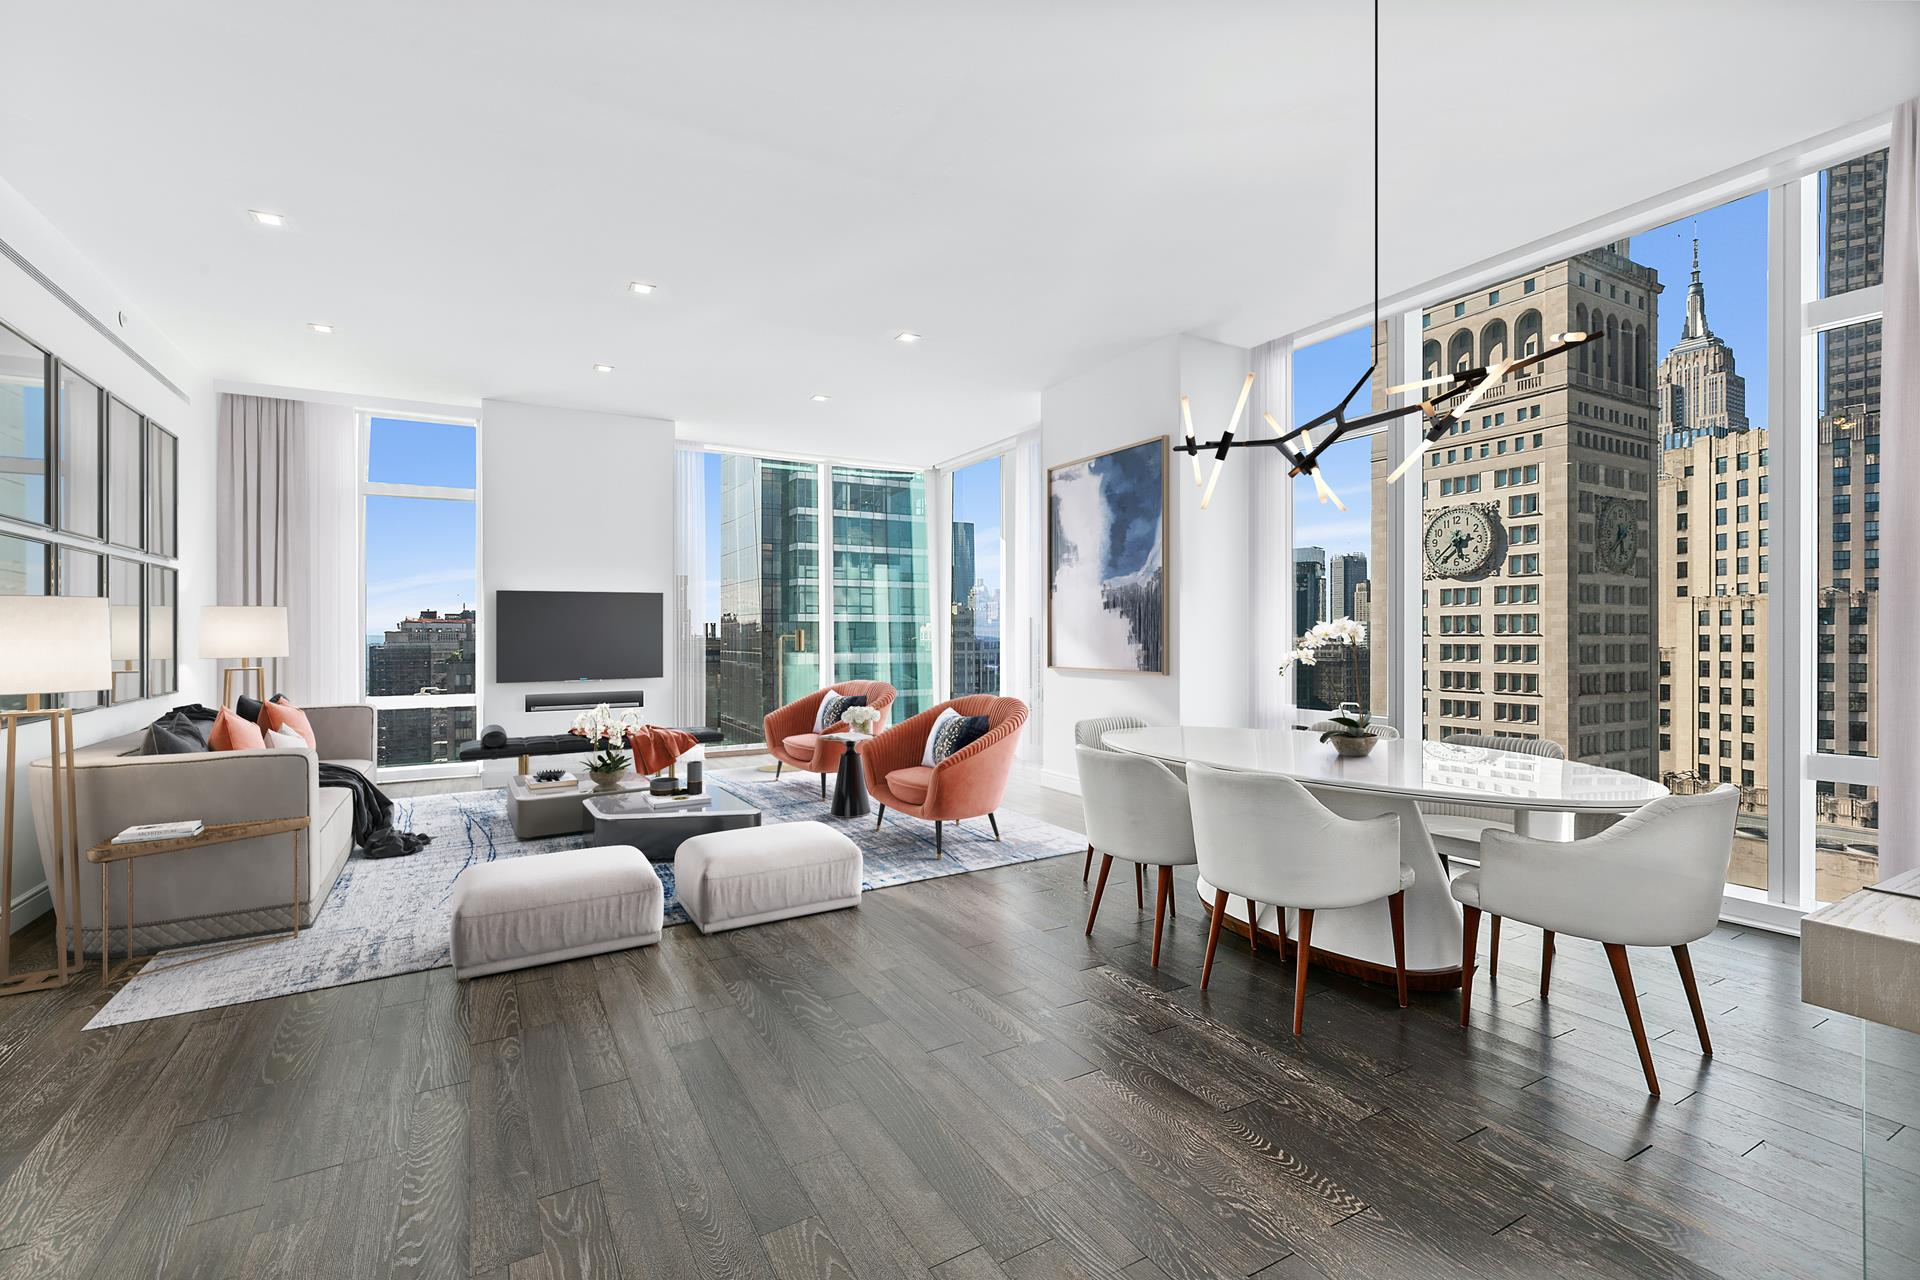 Perched high above the Flatiron District, with 10-foot ceilings and floor-to-ceiling windows, boasting southern, western, and northern exposures, Residence 31A commands dramatic architectural and river views, is awash in natural light throughout the day   and basked in golden sunsets.     The windowed kitchen boasts Nanz hardware, Sub-Zero and Miele appliances, custom cabinetry by Molteni, marble countertops and backsplash. Adjacent to the kitchen's open breakfast counter, the wet bar outfitted in marble, solid-oak paneling with a Sub-Zero wine   refrigerator is ideal for entertaining.    The corner, southwest facing Master Bedroom Suite includes a large customized walk-in closet, a windowed five fixture master bath and abundant natural light. Bathrooms feature a handsome selection of marbles, custom wood vanities, recessed medicine cabinets,   inset shower and tub niches, and Waterworks fixtures. Residences include 4-pipe fan coil HVAC systems and Kraus home automation systems.    Designed by the world-renowned architectural firm Kohn Pedersen Fox Associates and located on tree-lined 22nd Street between Park Avenue South and Broadway, Madison Square Park Tower's 75-foot-wide granite base blends perfectly with the neighboring facades,   with the glass tower ascending to it's 777-foot pinnacle above Flatiron.    Residents enjoy five floors of amenities consisting of a fitness center with boxing and private training suite, multi-sport simulator, basketball court, children's playroom, library, billiards, card room, terrace with outdoor grill, and two gracious entertaining   spaces including Club 54, perfect for entertaining with a full kitchen and some of the most spectacular views in New York.